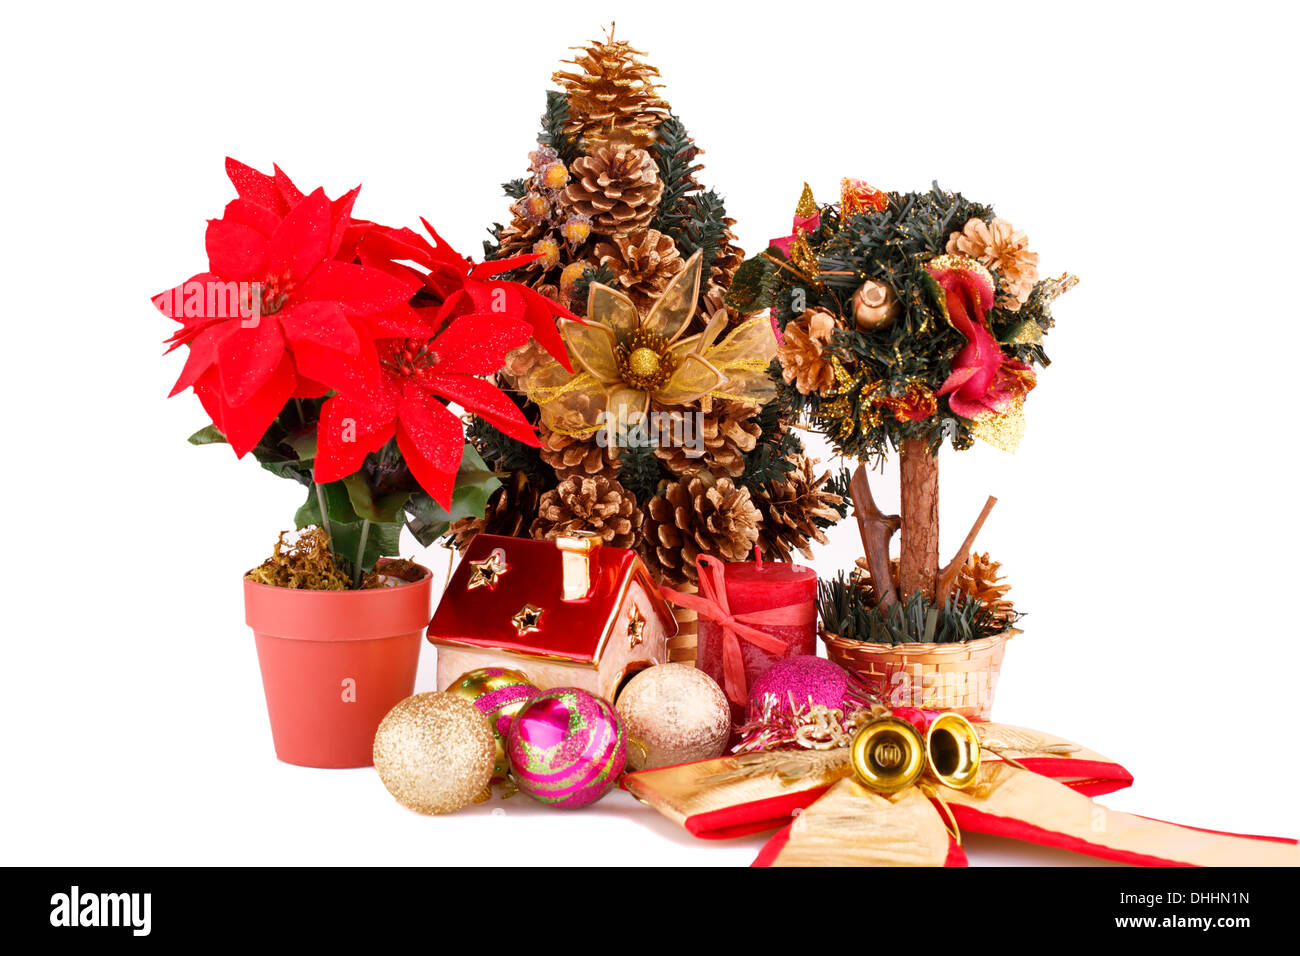 Holly berry flowers, Christmas tree and decoration isolated ... on christmas lily plant, christmas pepper plant, snowman plant, christmas box plant, mistletoe plant, christmas pine plant, christmas rose plant, christmas chinese lantern plant, christmas candle plant, cinderella rose plant, christmas kalanchoe plant, name of christmas plant, christmas bulb plant, goldfish plant, polar arctic tundra plant, christmas hope plant, christmas berry plant, christmas tree, christmas heliconia plant, christmas hydrangea plant,